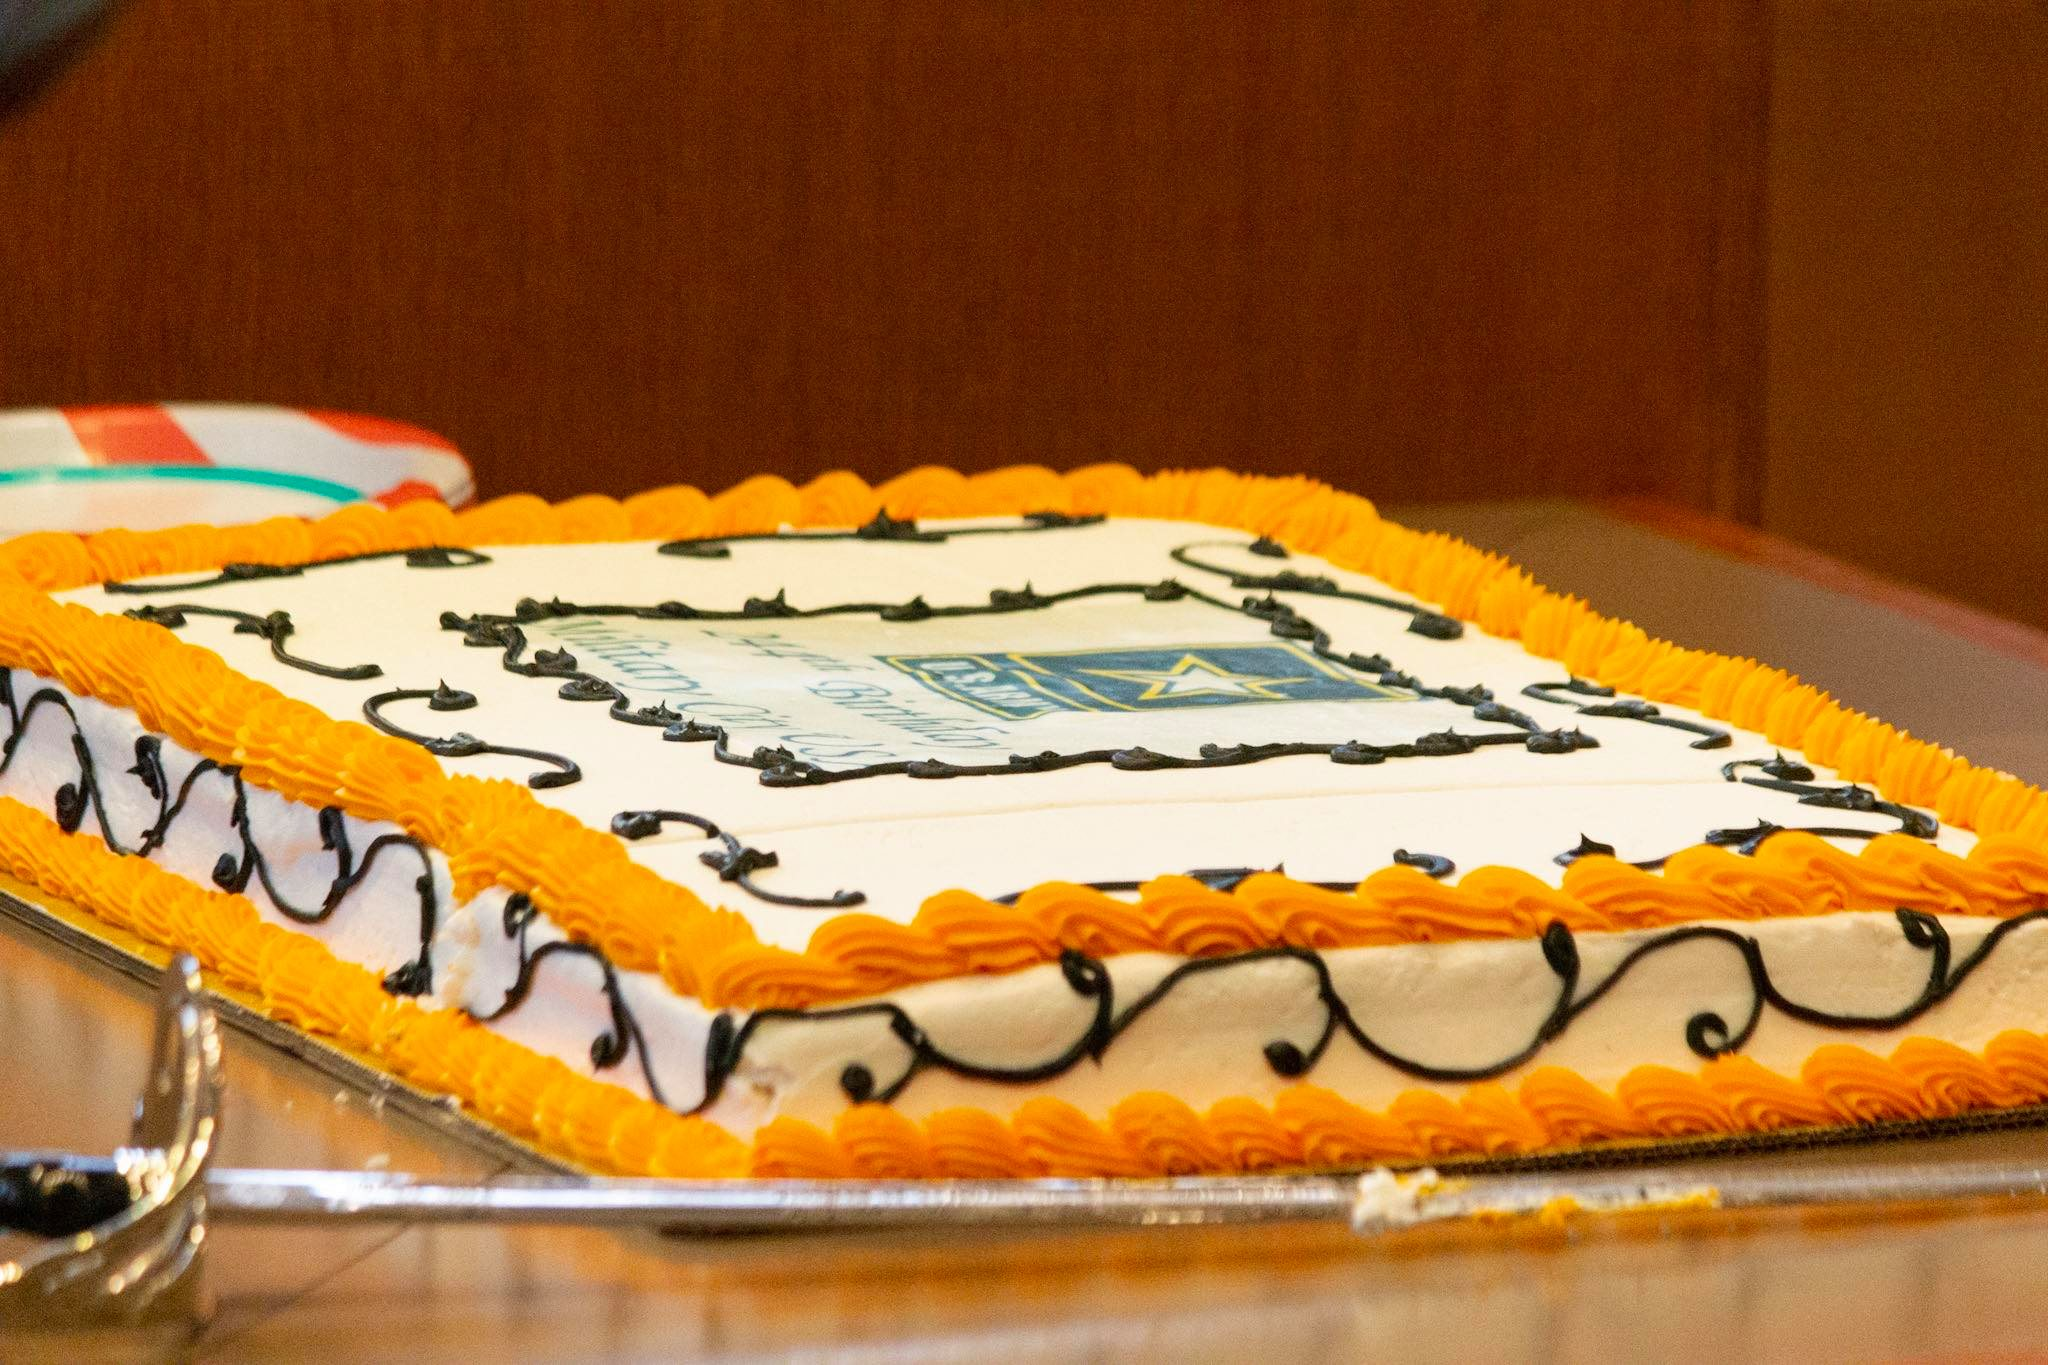 The U.S. Army cake at the ceremony. (Photo by  William Timmerman .)